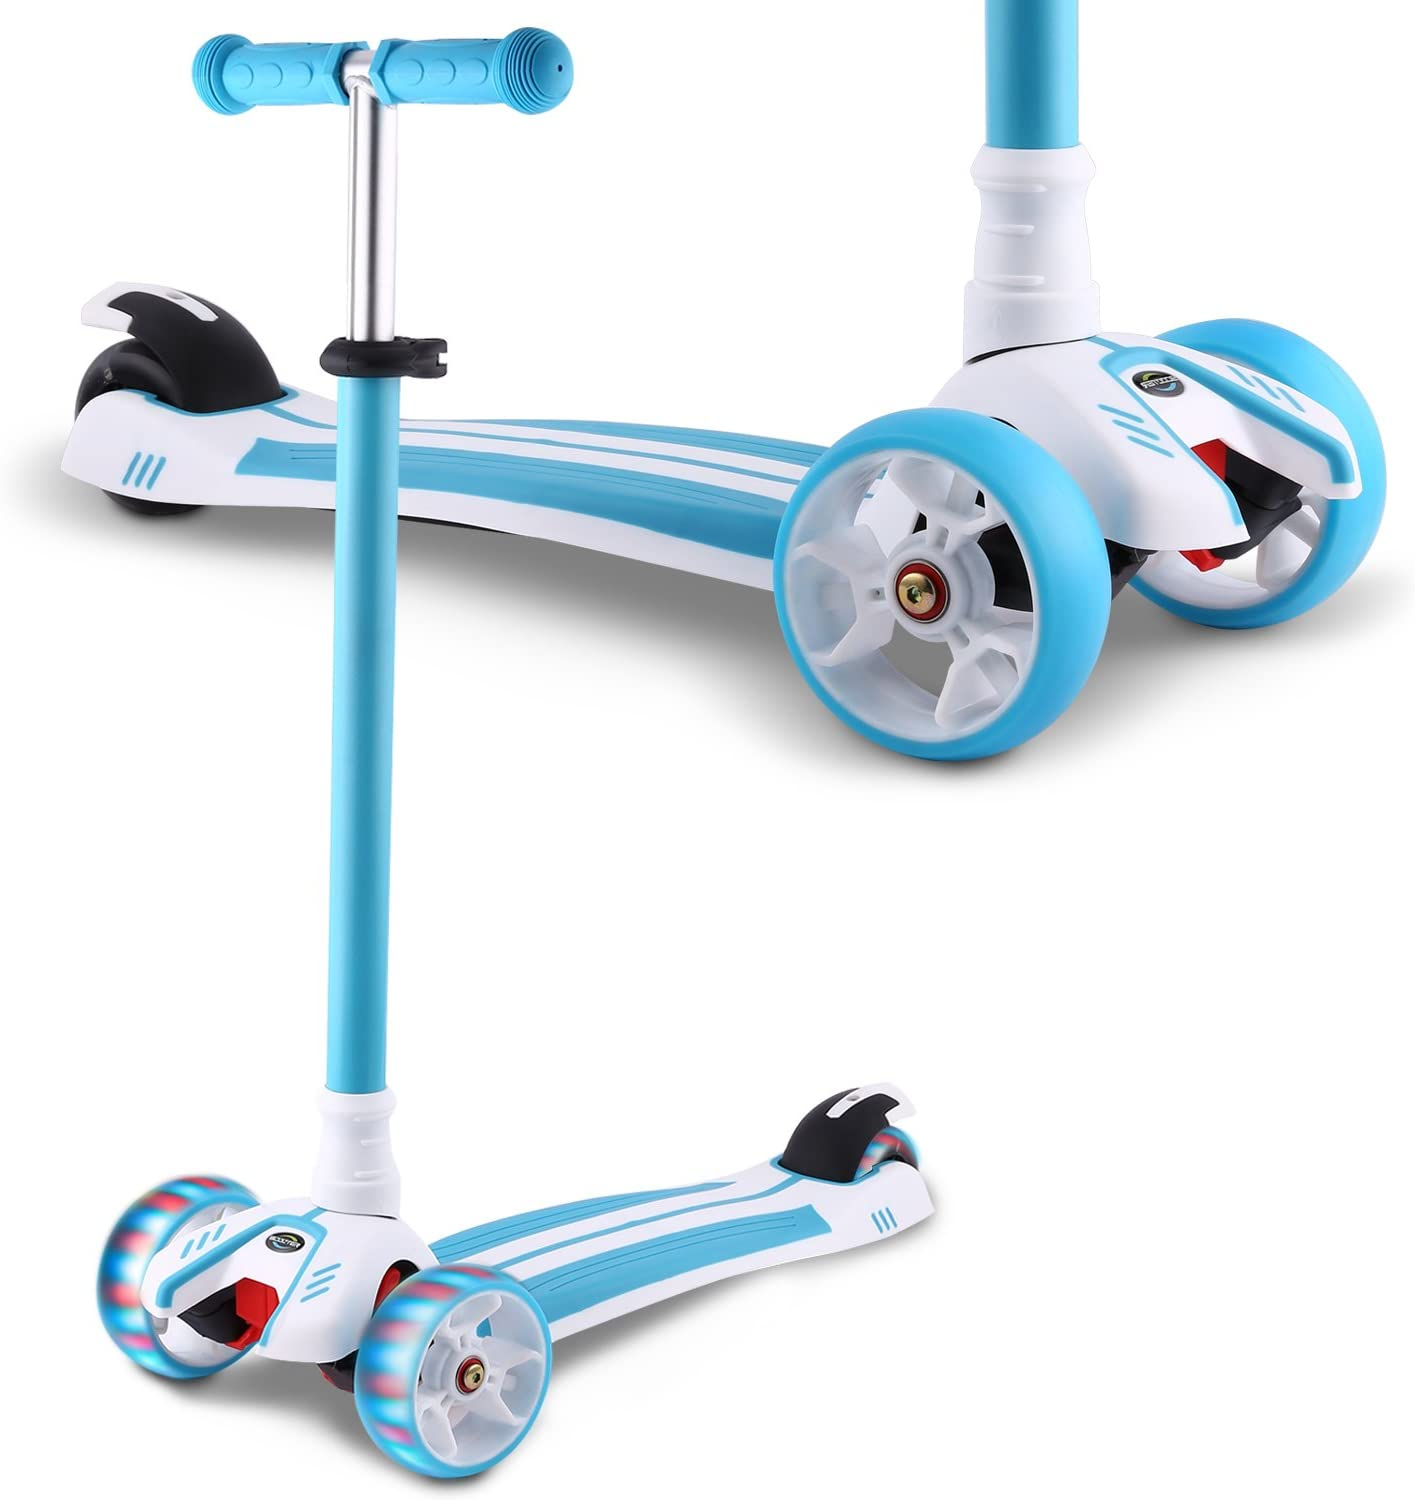 Hikole Kick Scooter for Kids, 3 Wheel Scooter for Toddlers Girls Boys, 3 Adjustable Height, Lean to Steer with PU Flashing Wheels for Children from 3 to 12 Years Old